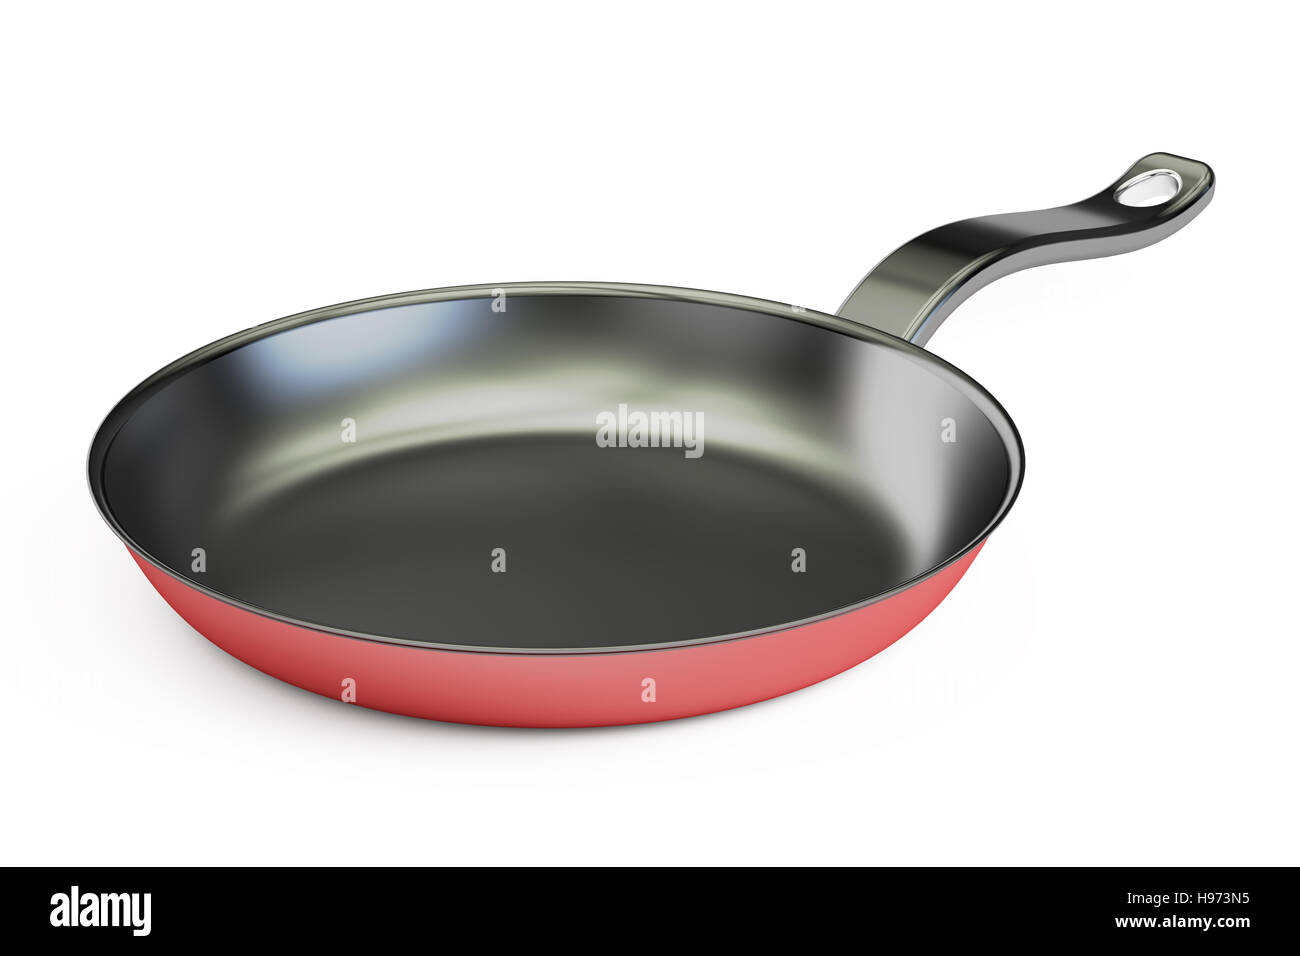 Teflon frypan closeup, 3D rendering isolated on white background - Stock Image